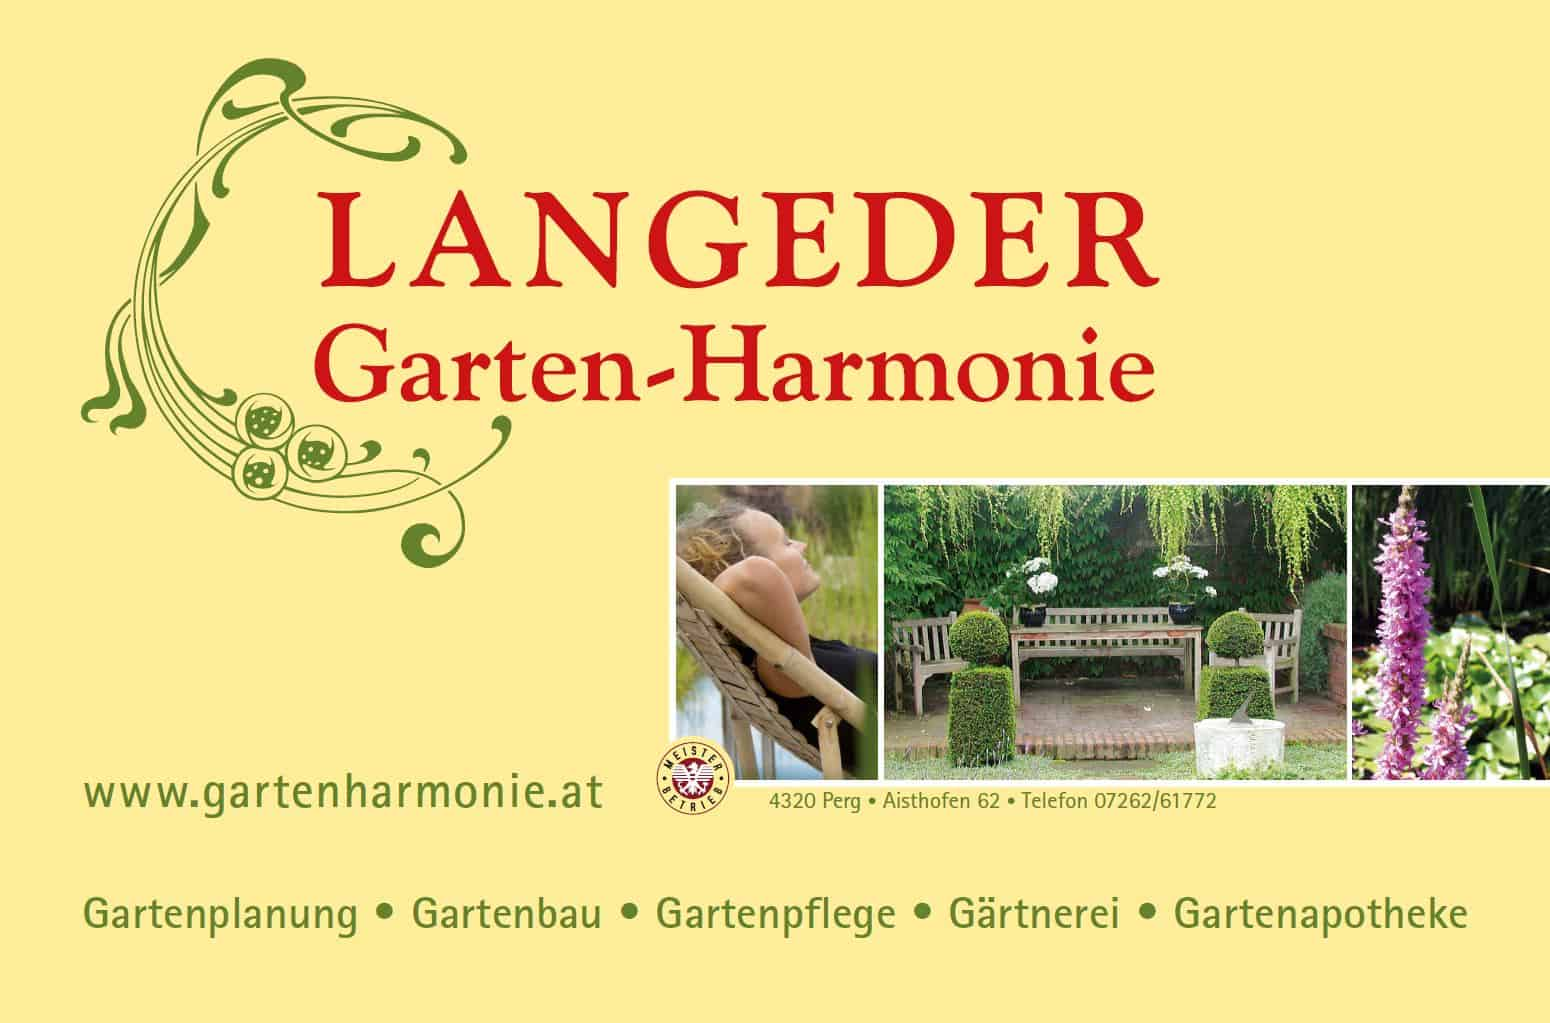 Garten-Harmonie Langeder